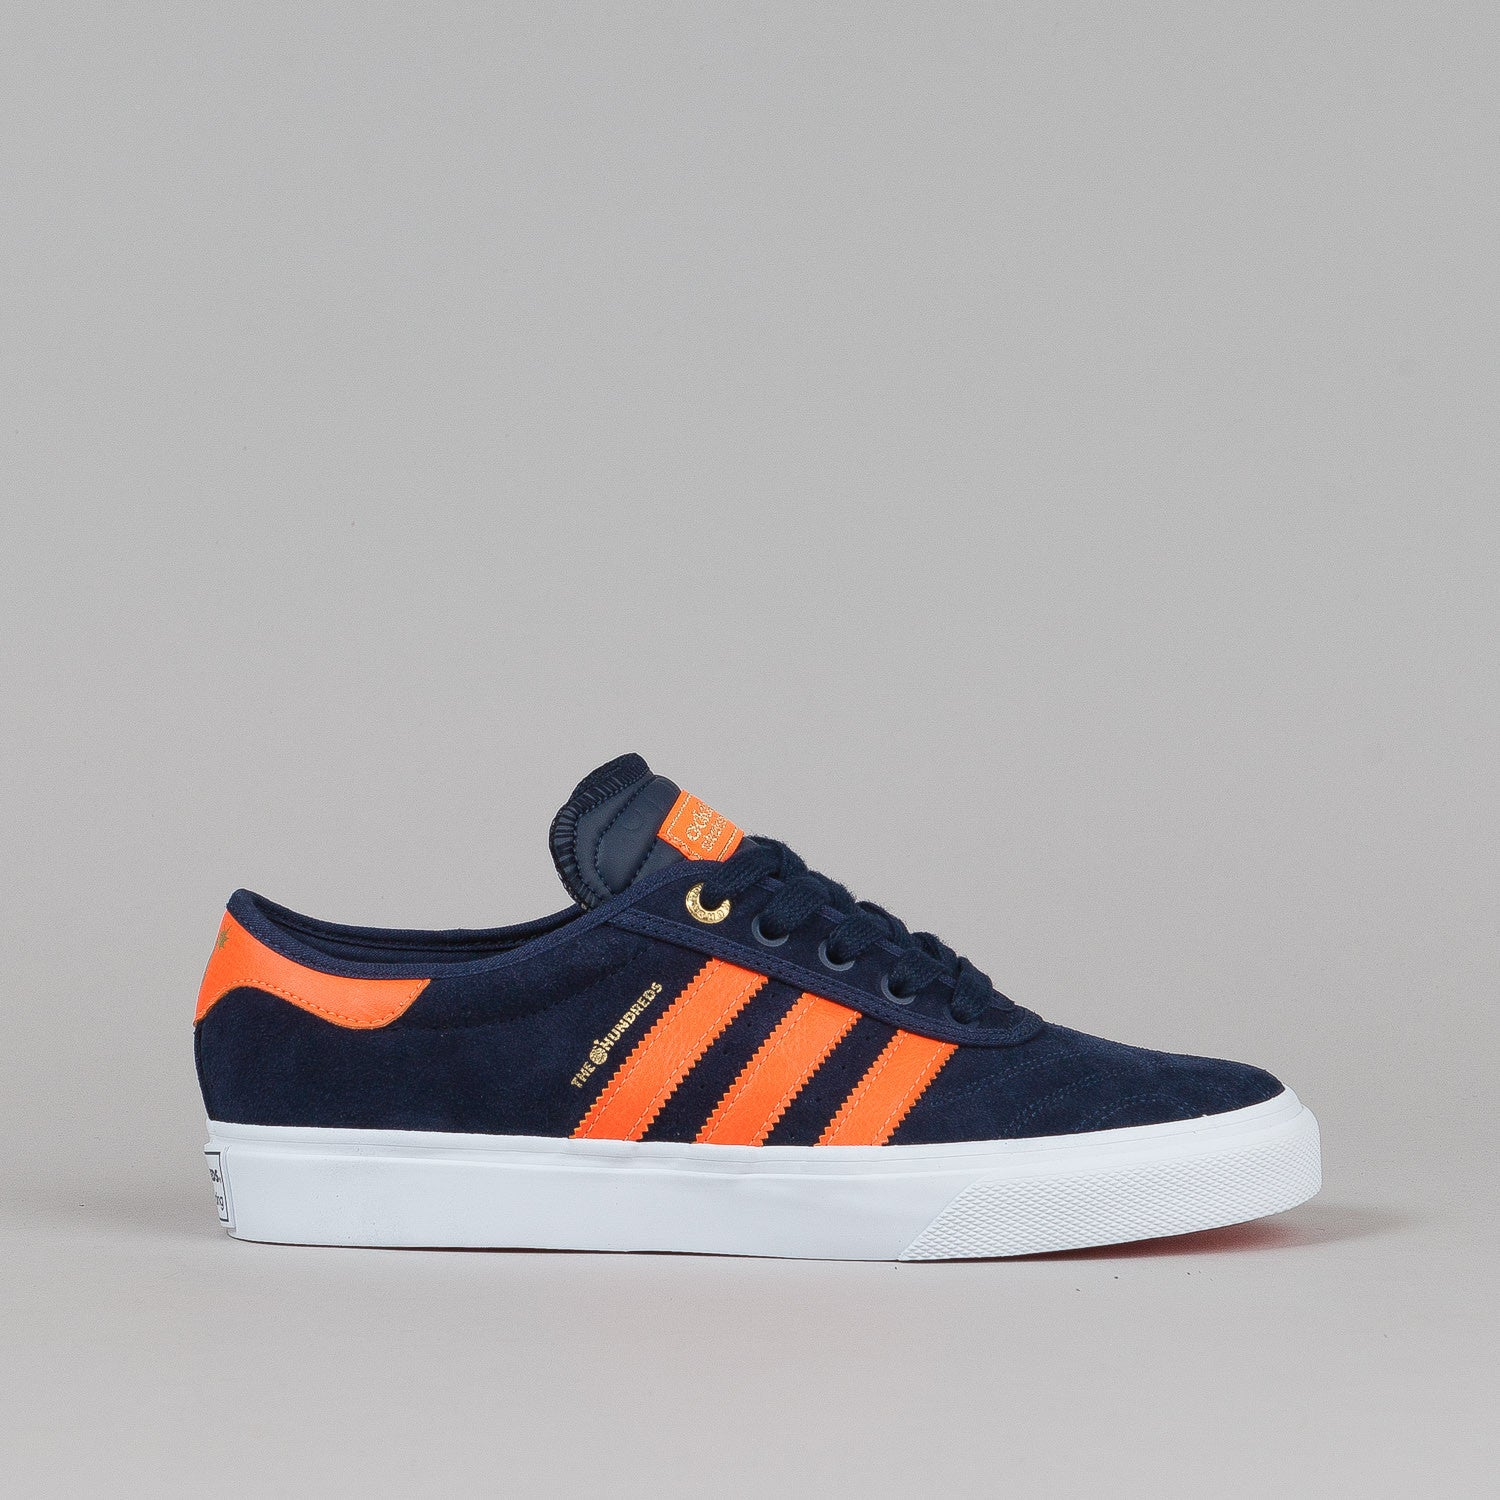 Adidas X The Hundreds Adi-Ease Shoes